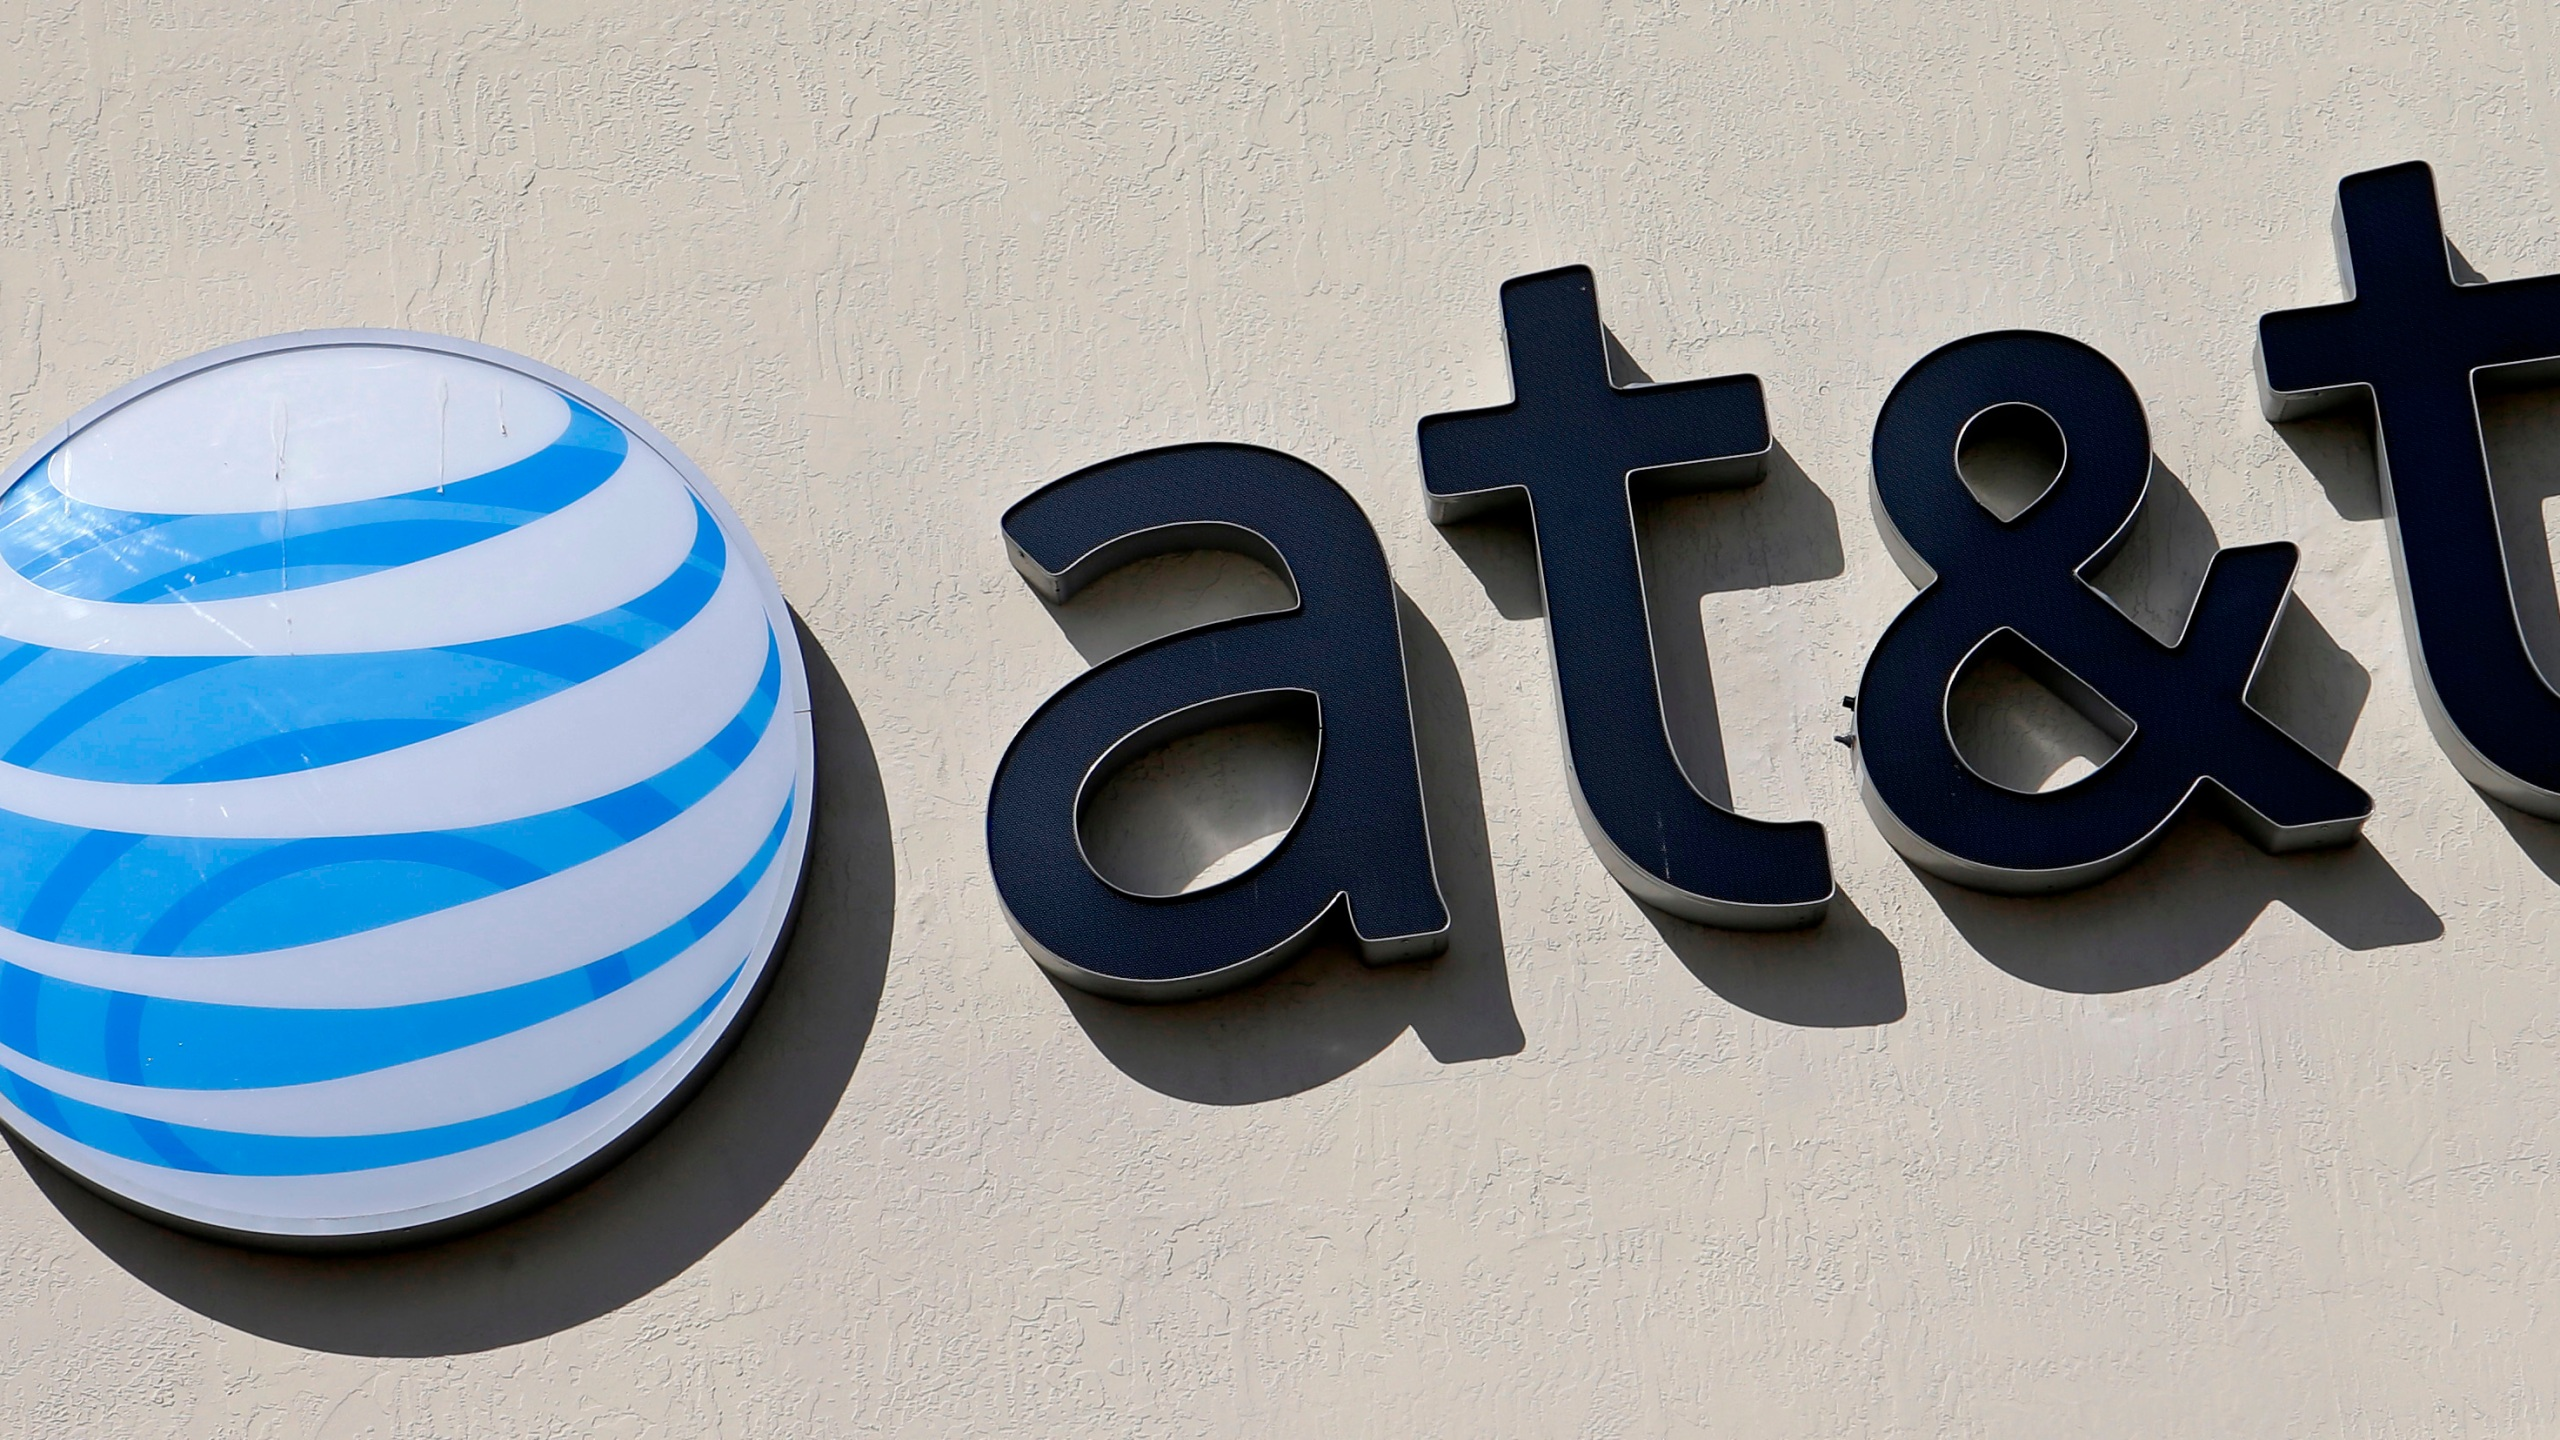 AT&T-Verizon-Antitrust_Investigation_49750-159532.jpg14715842